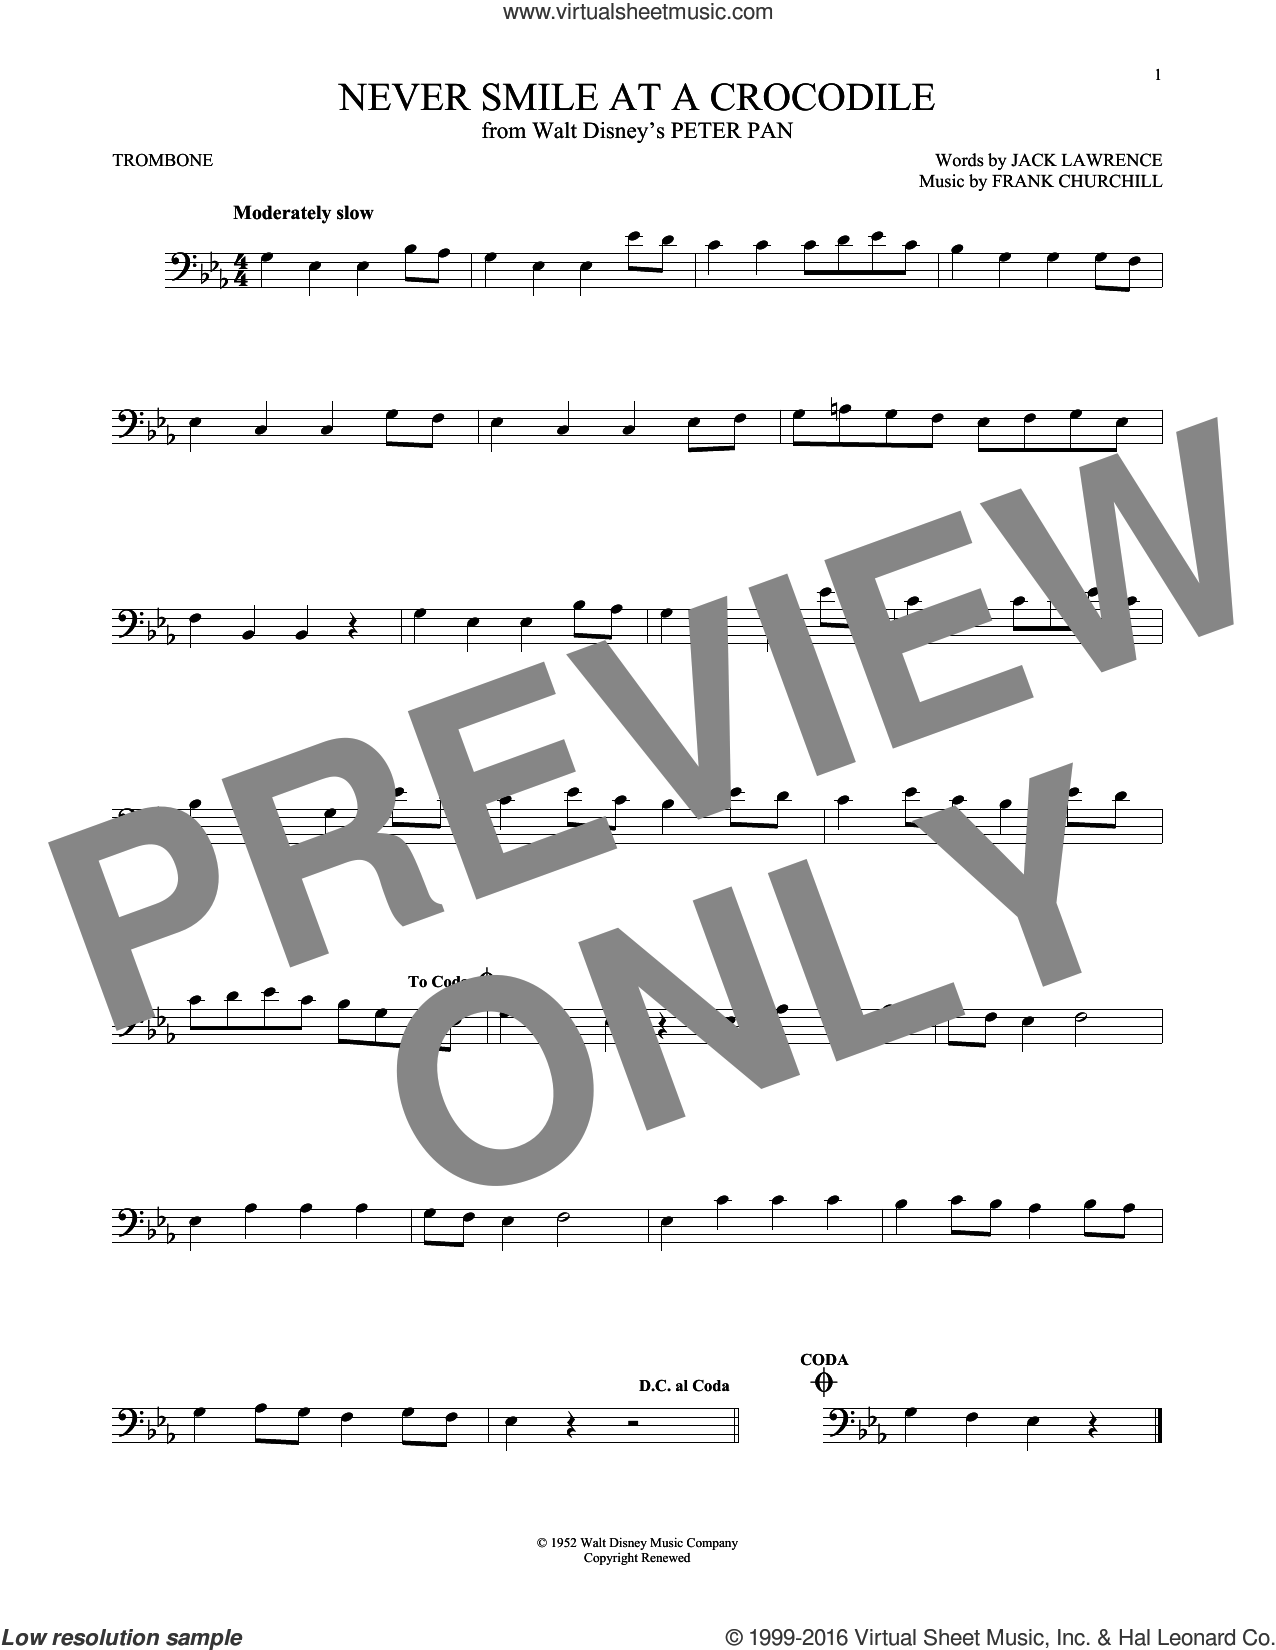 Never Smile At A Crocodile sheet music for trombone solo by Jack Lawrence and Frank Churchill, intermediate skill level